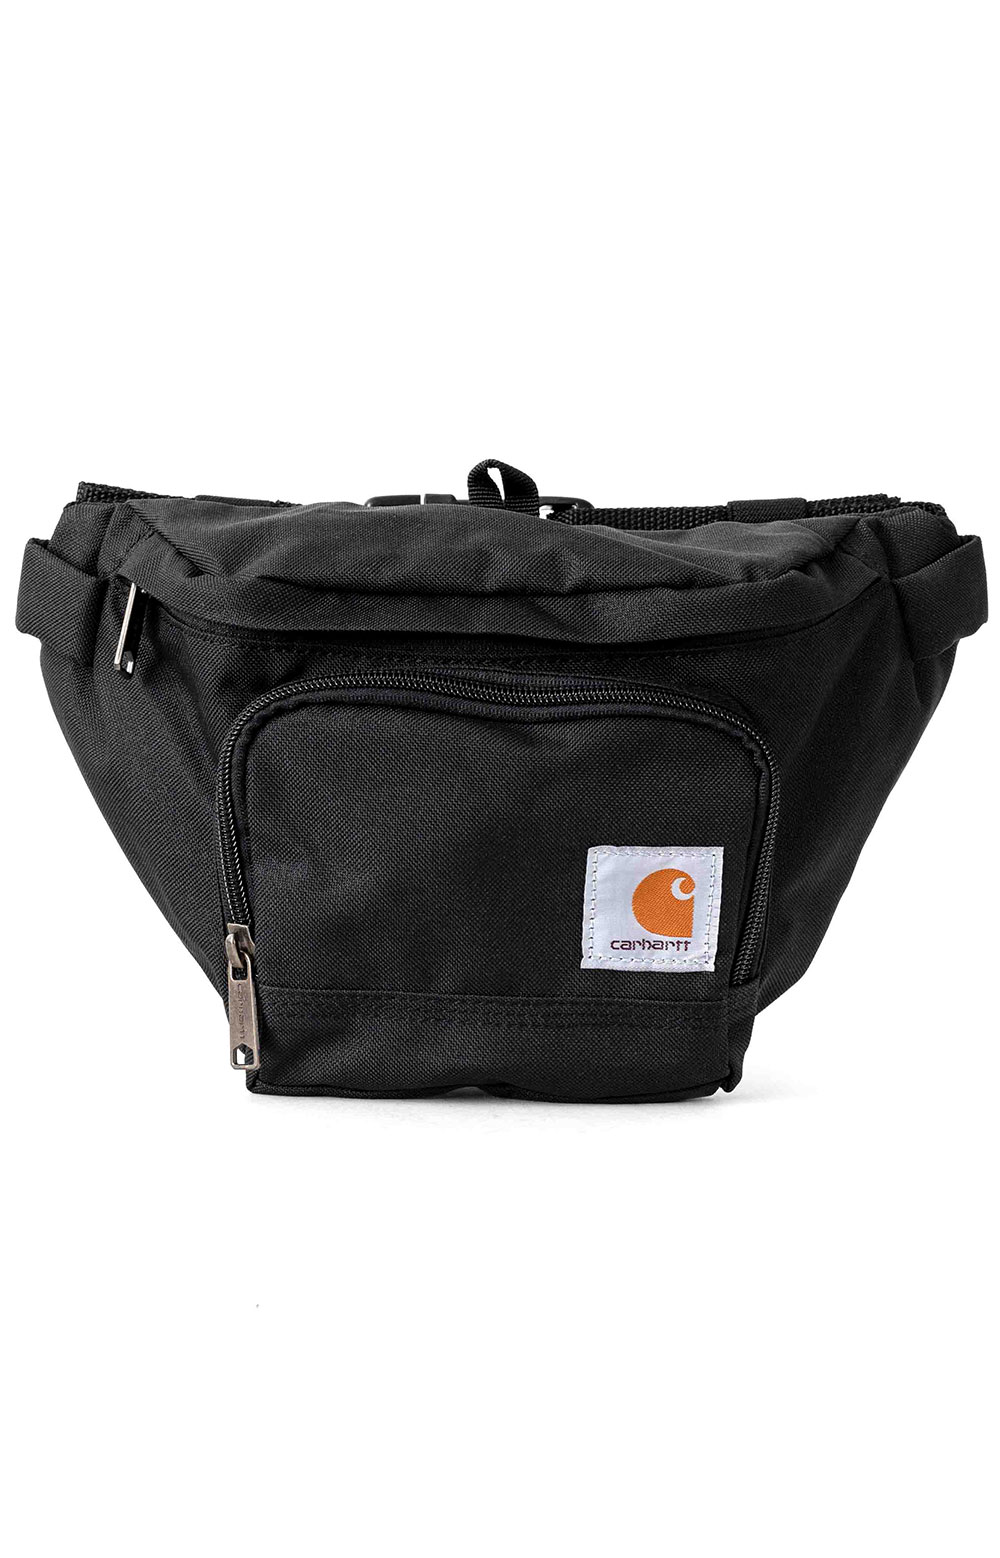 Carhartt Waist Pack - Black